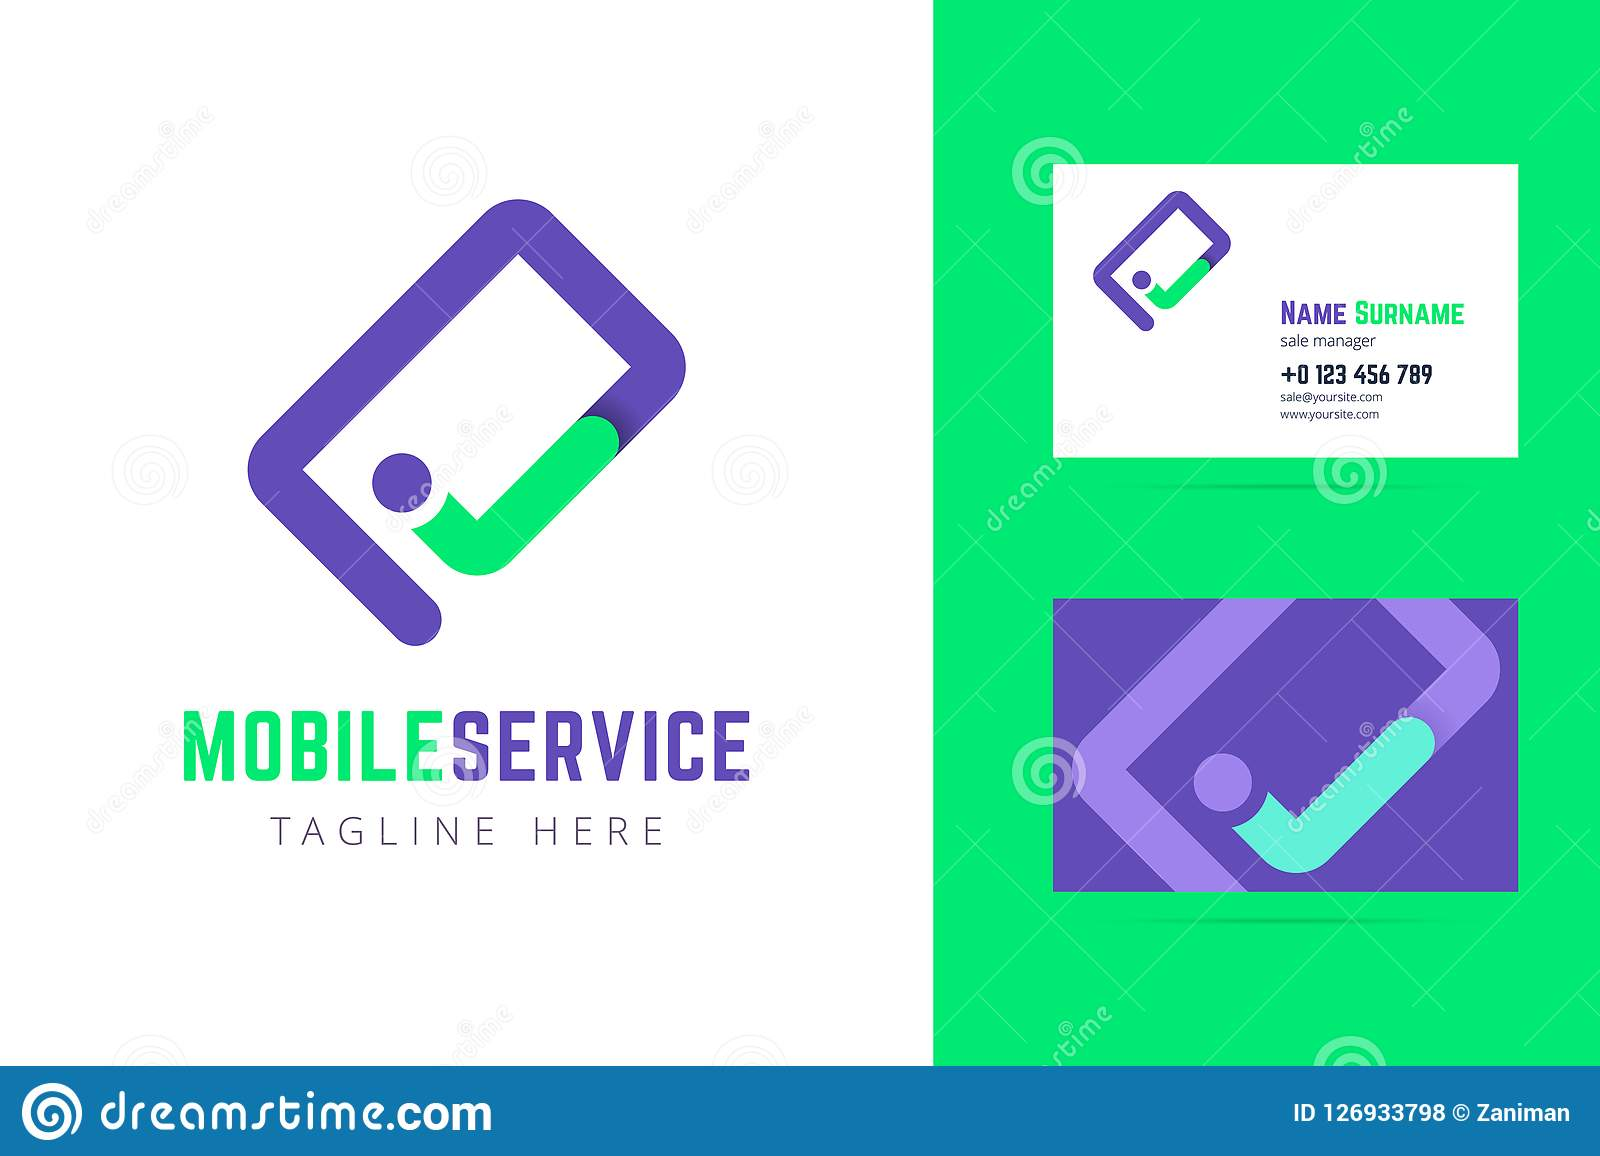 Mobile Service Logo And Business Card Template